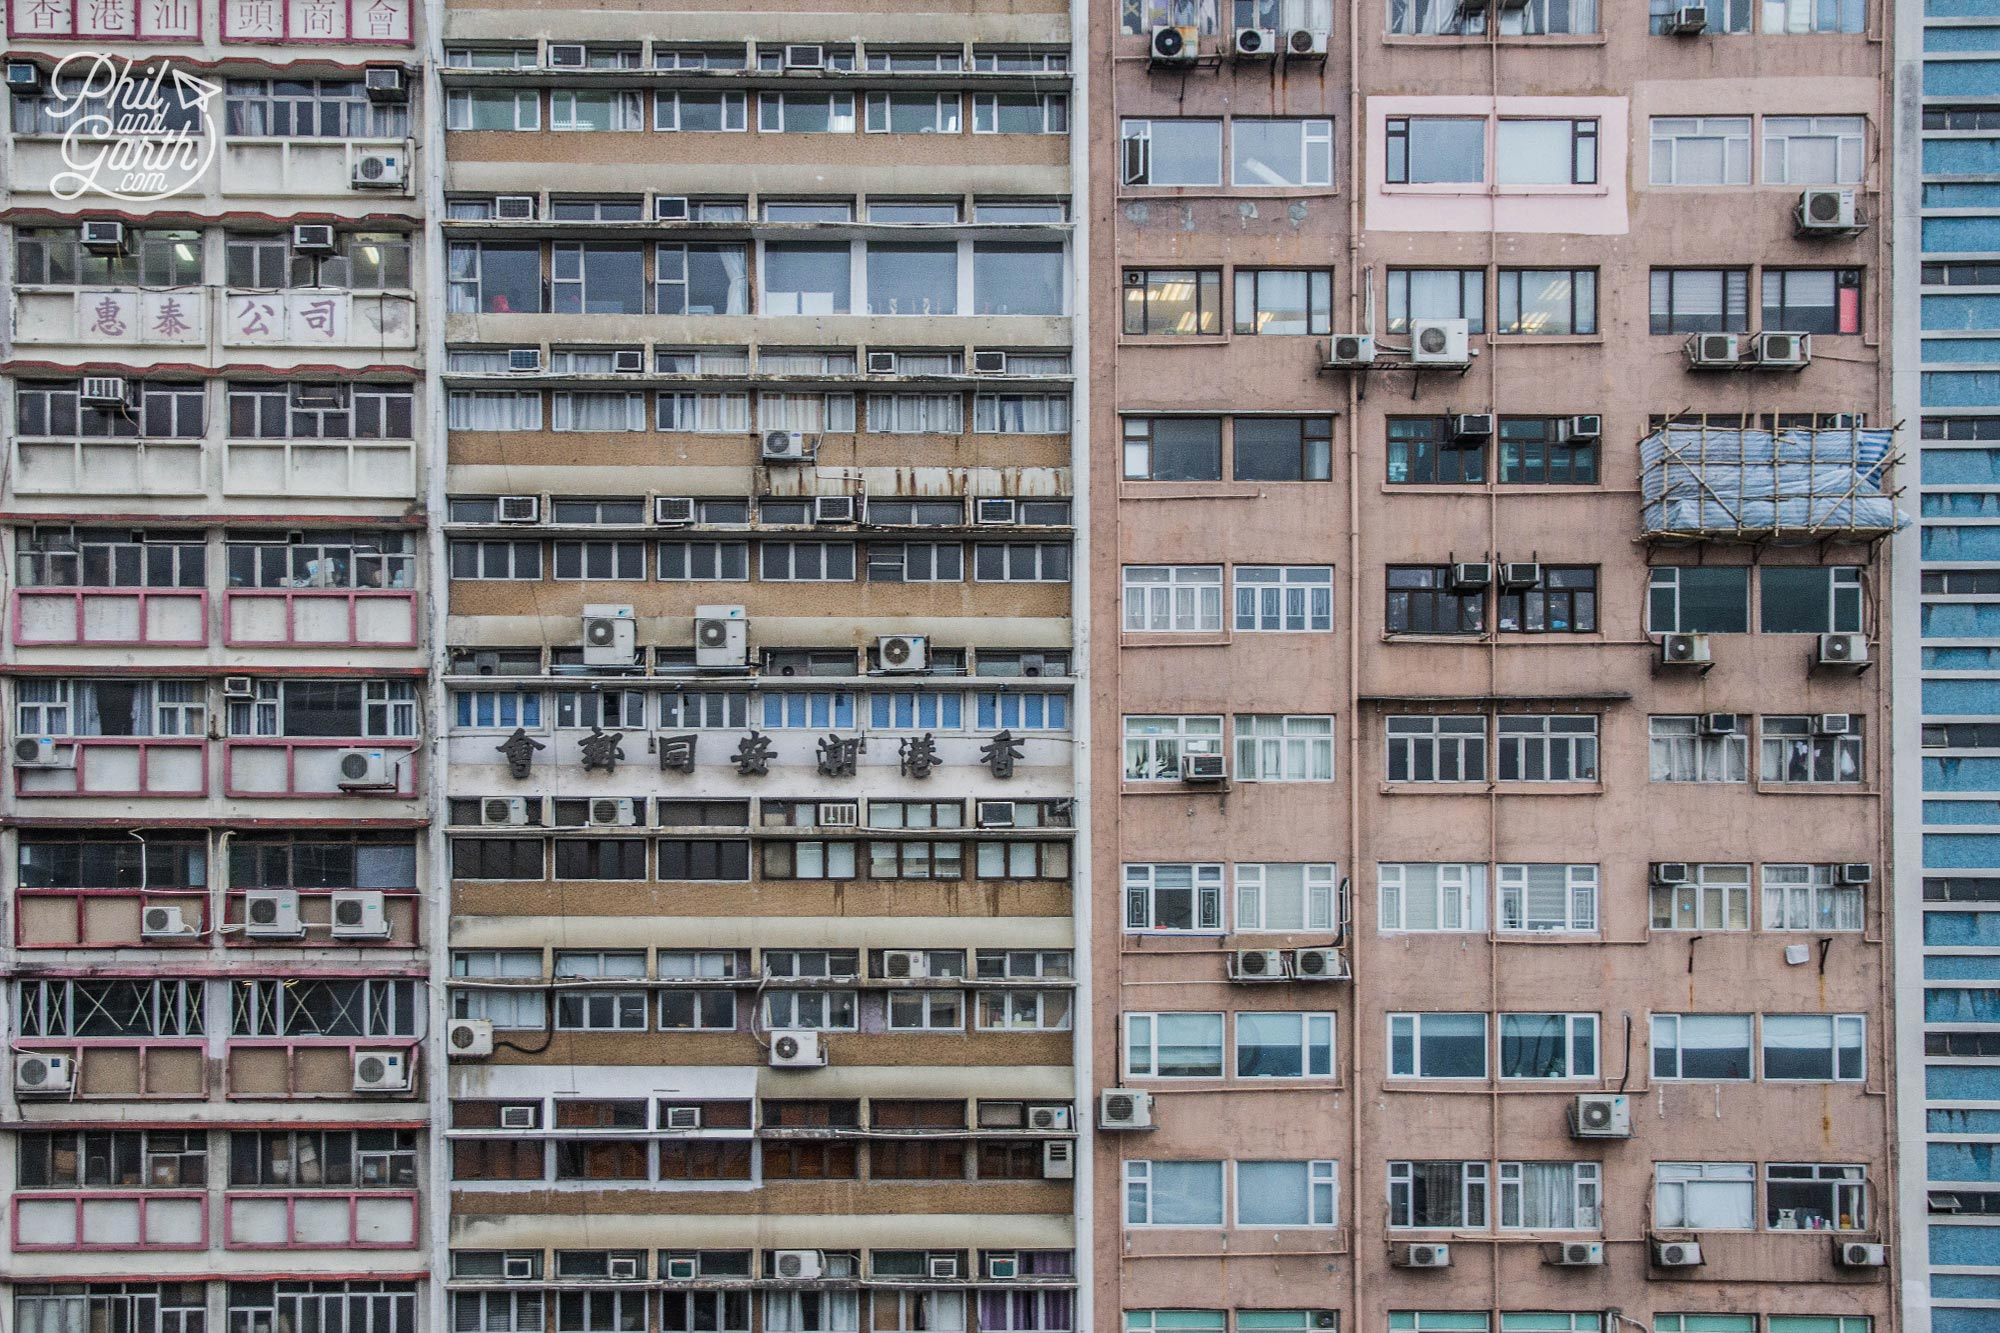 Some of Hong Kong's residential tower block homes